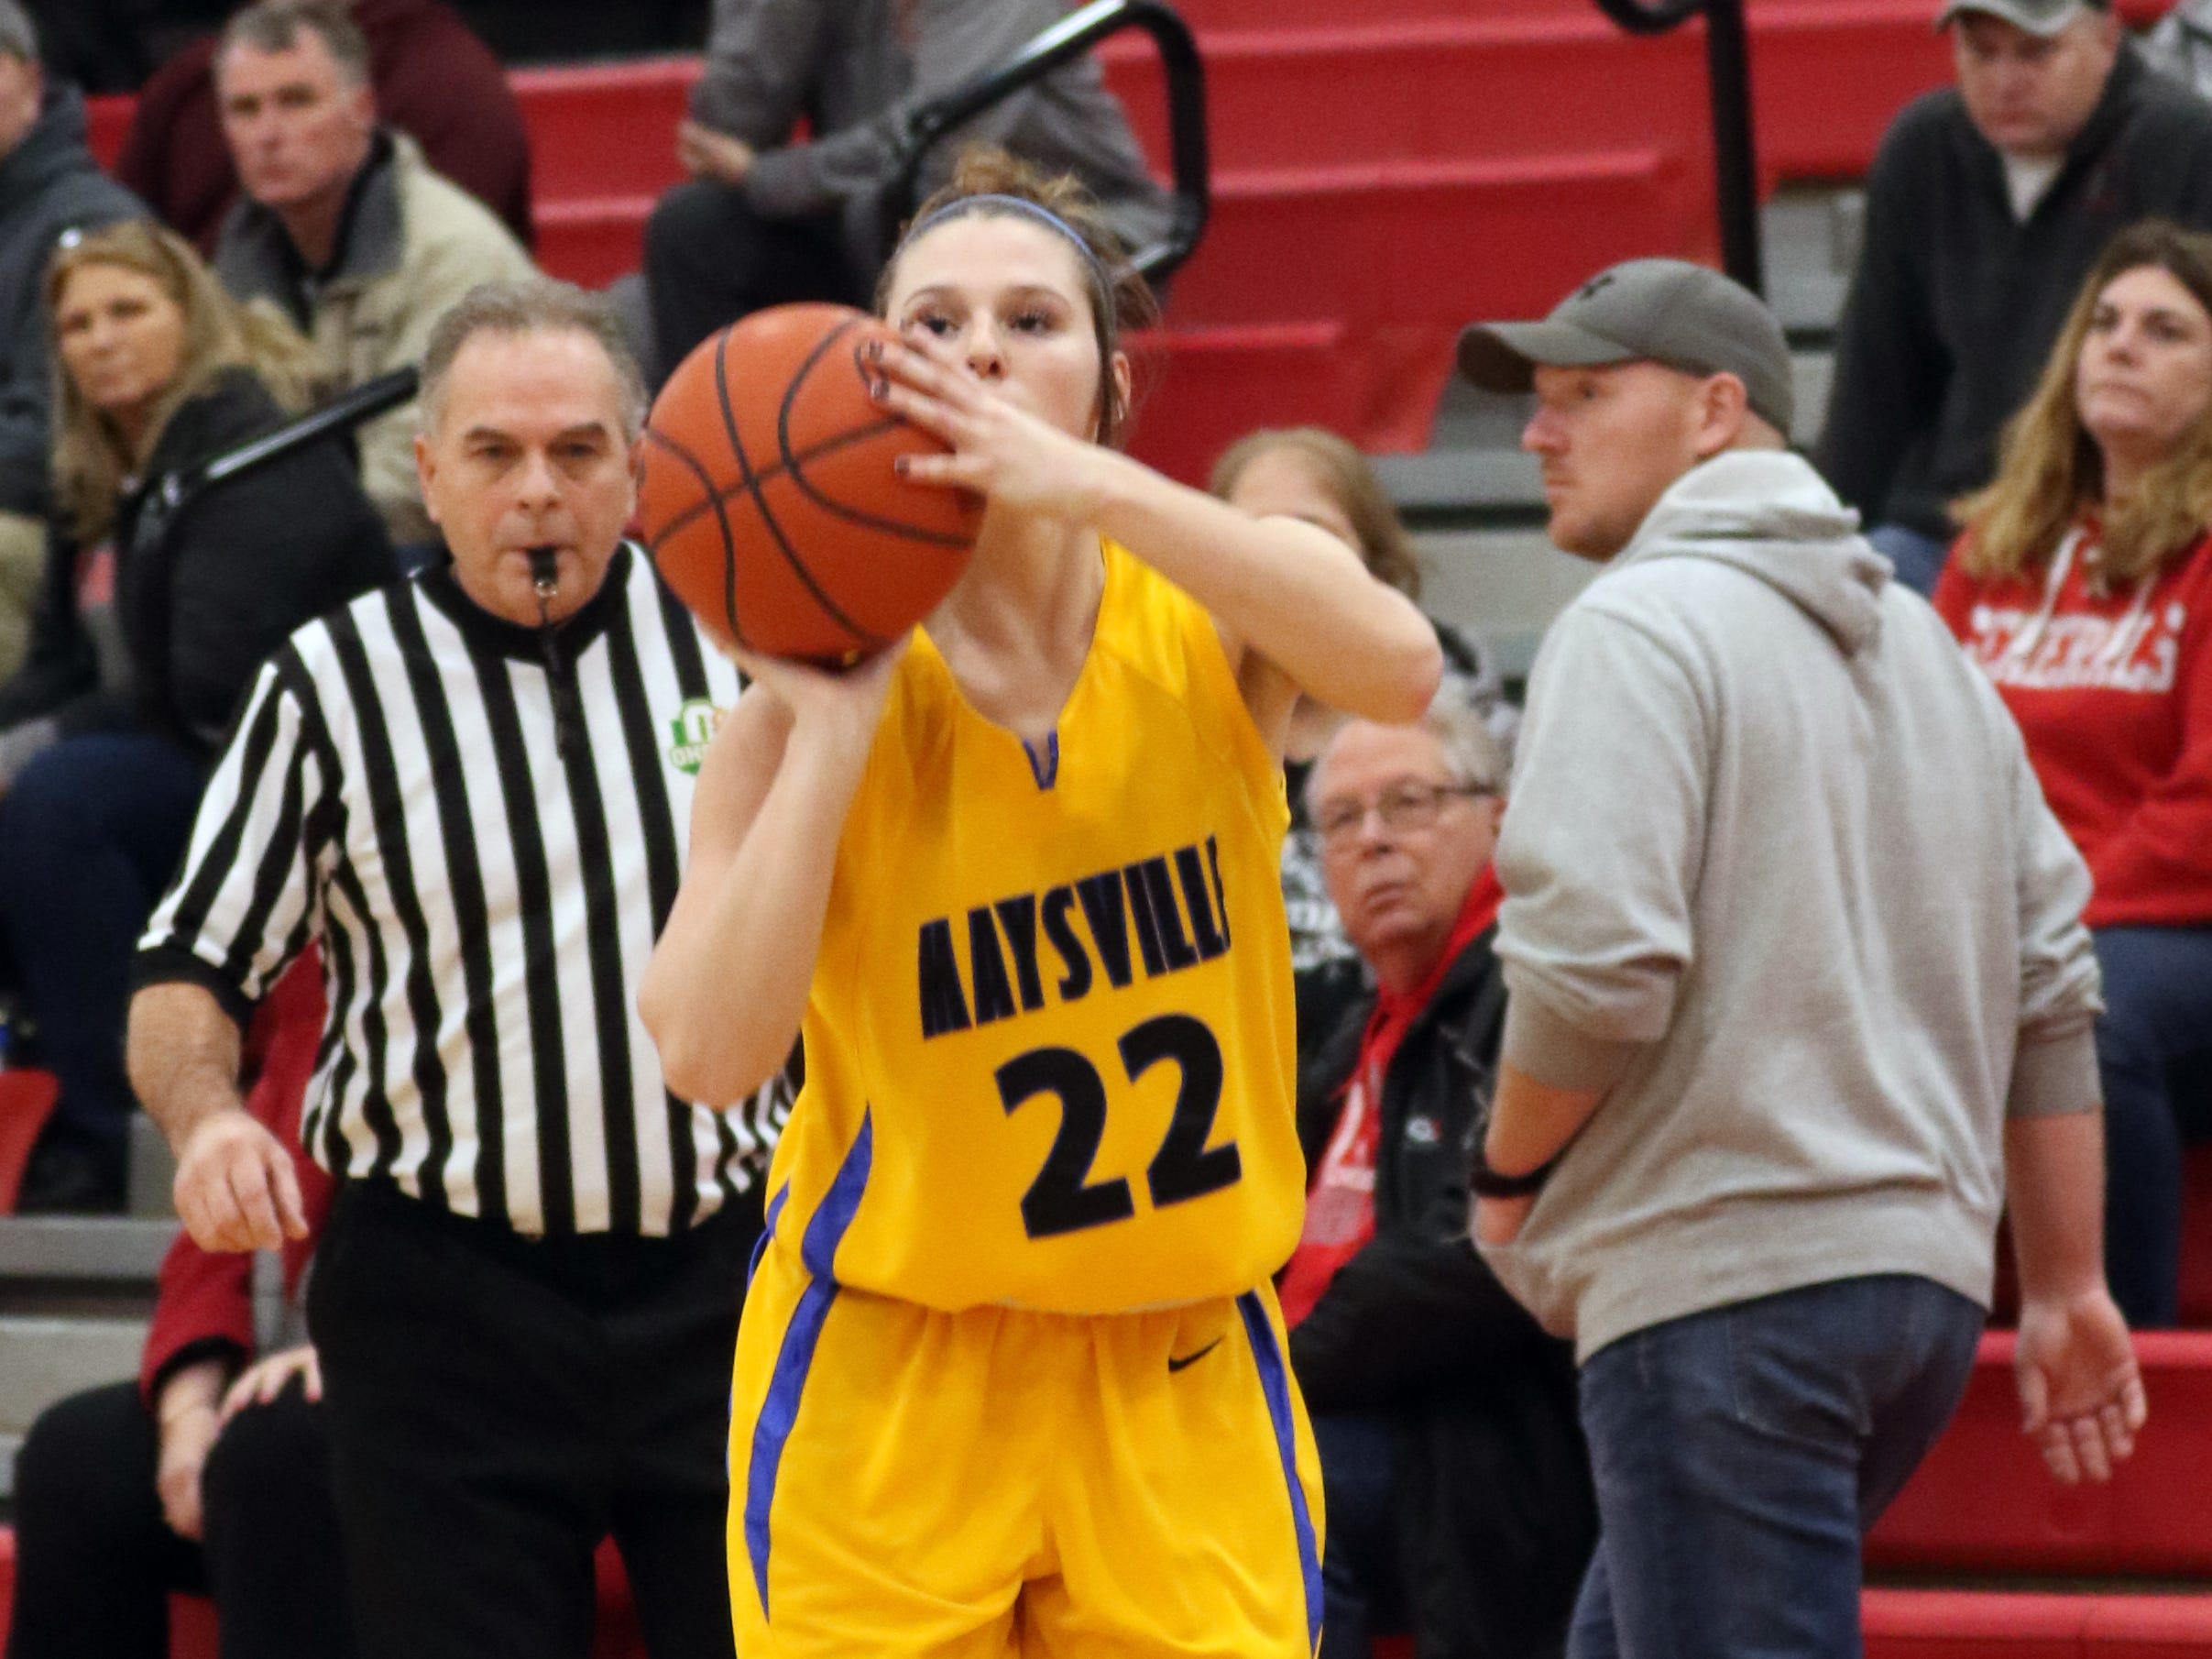 Maysville's Macie Jarrett puts up a shot against Sheridan.